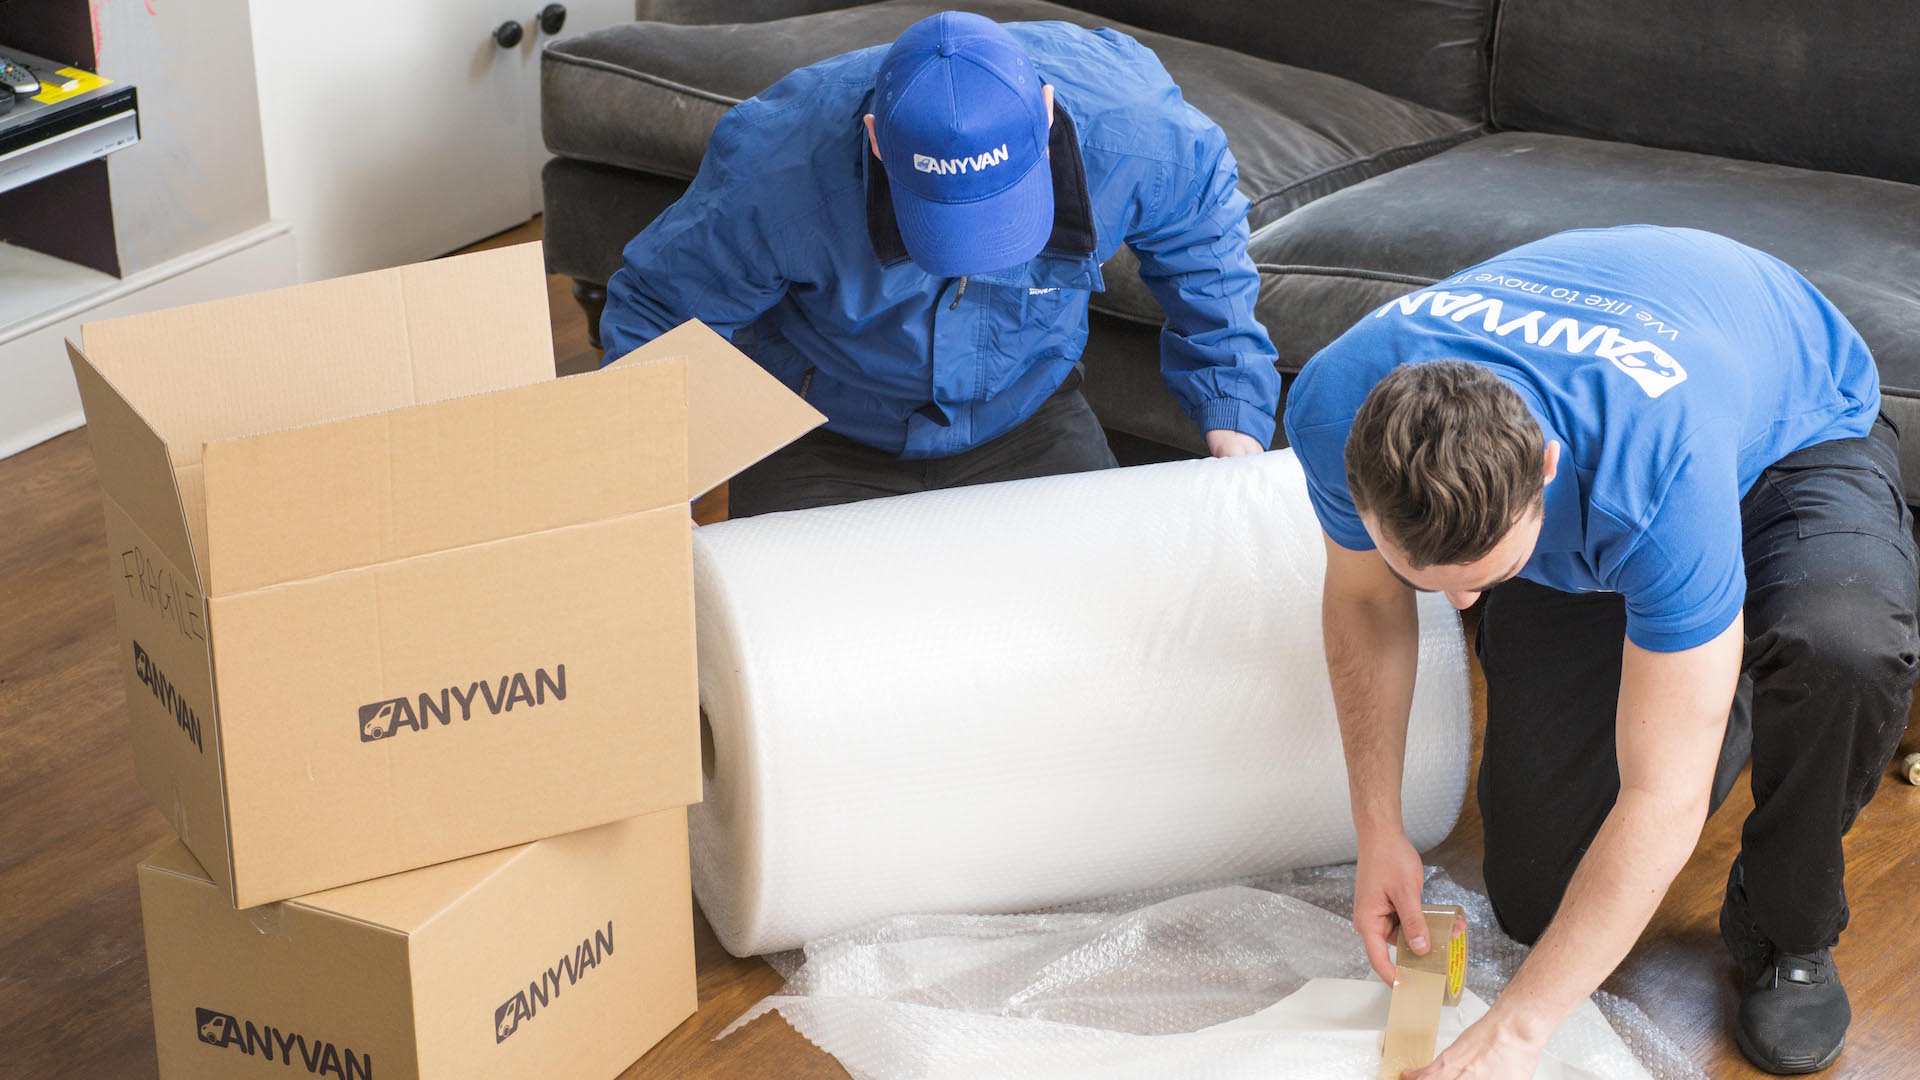 10 tips on how to make moving easier